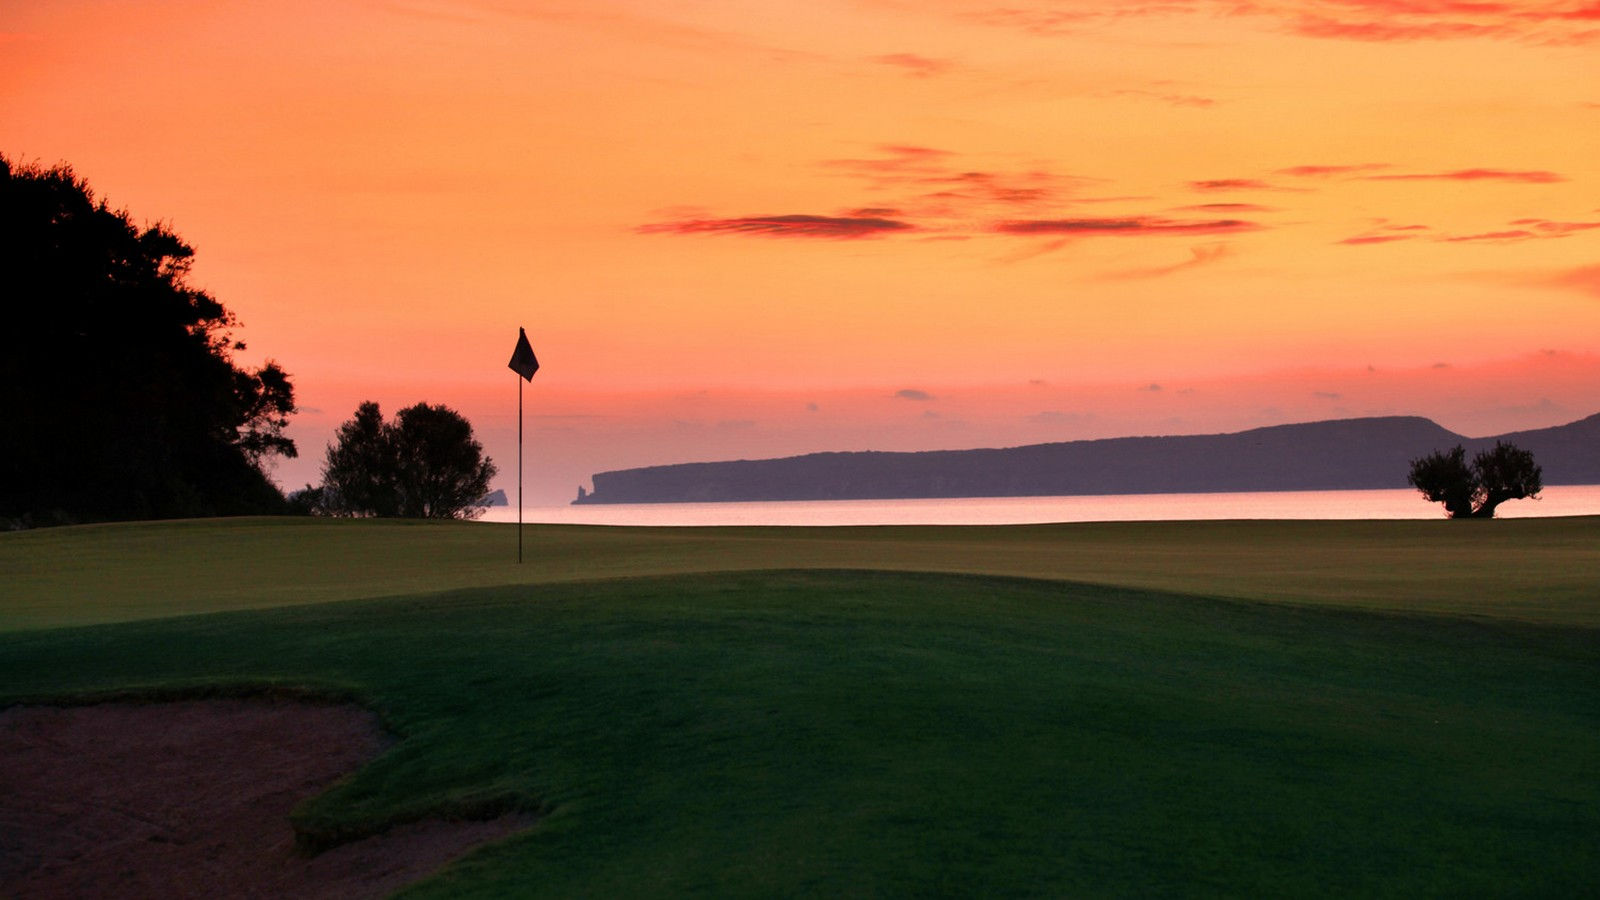 The Westin Resort Costa Navarino Messinia Greece Activities Golf The Bay Course Sunset View